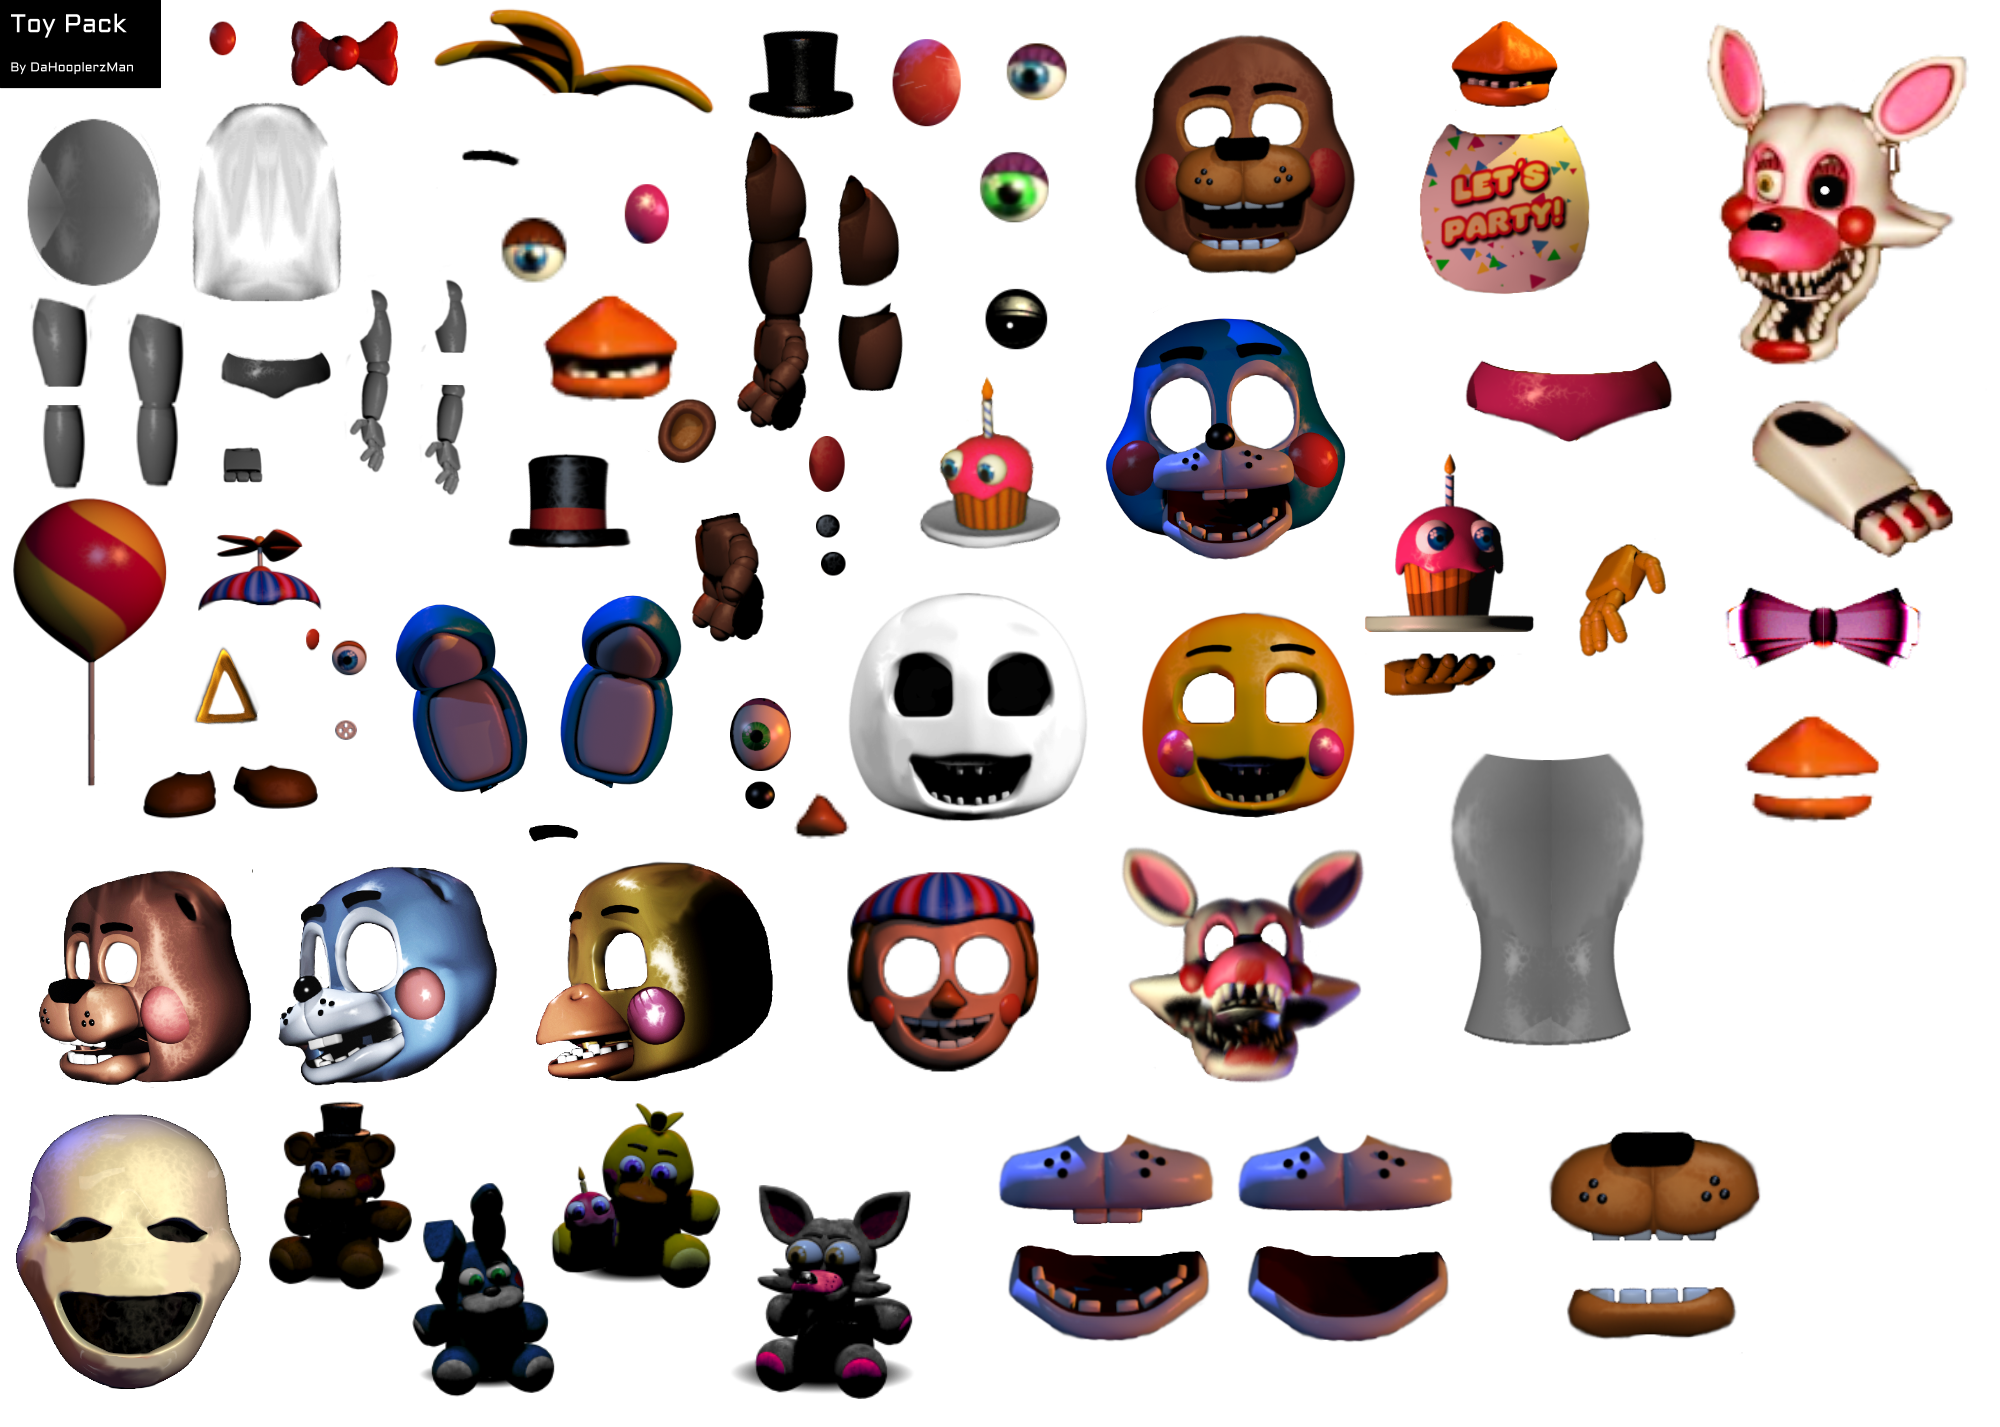 Fnaf toy animatronic resource pack by dahooplerzman on deviantart